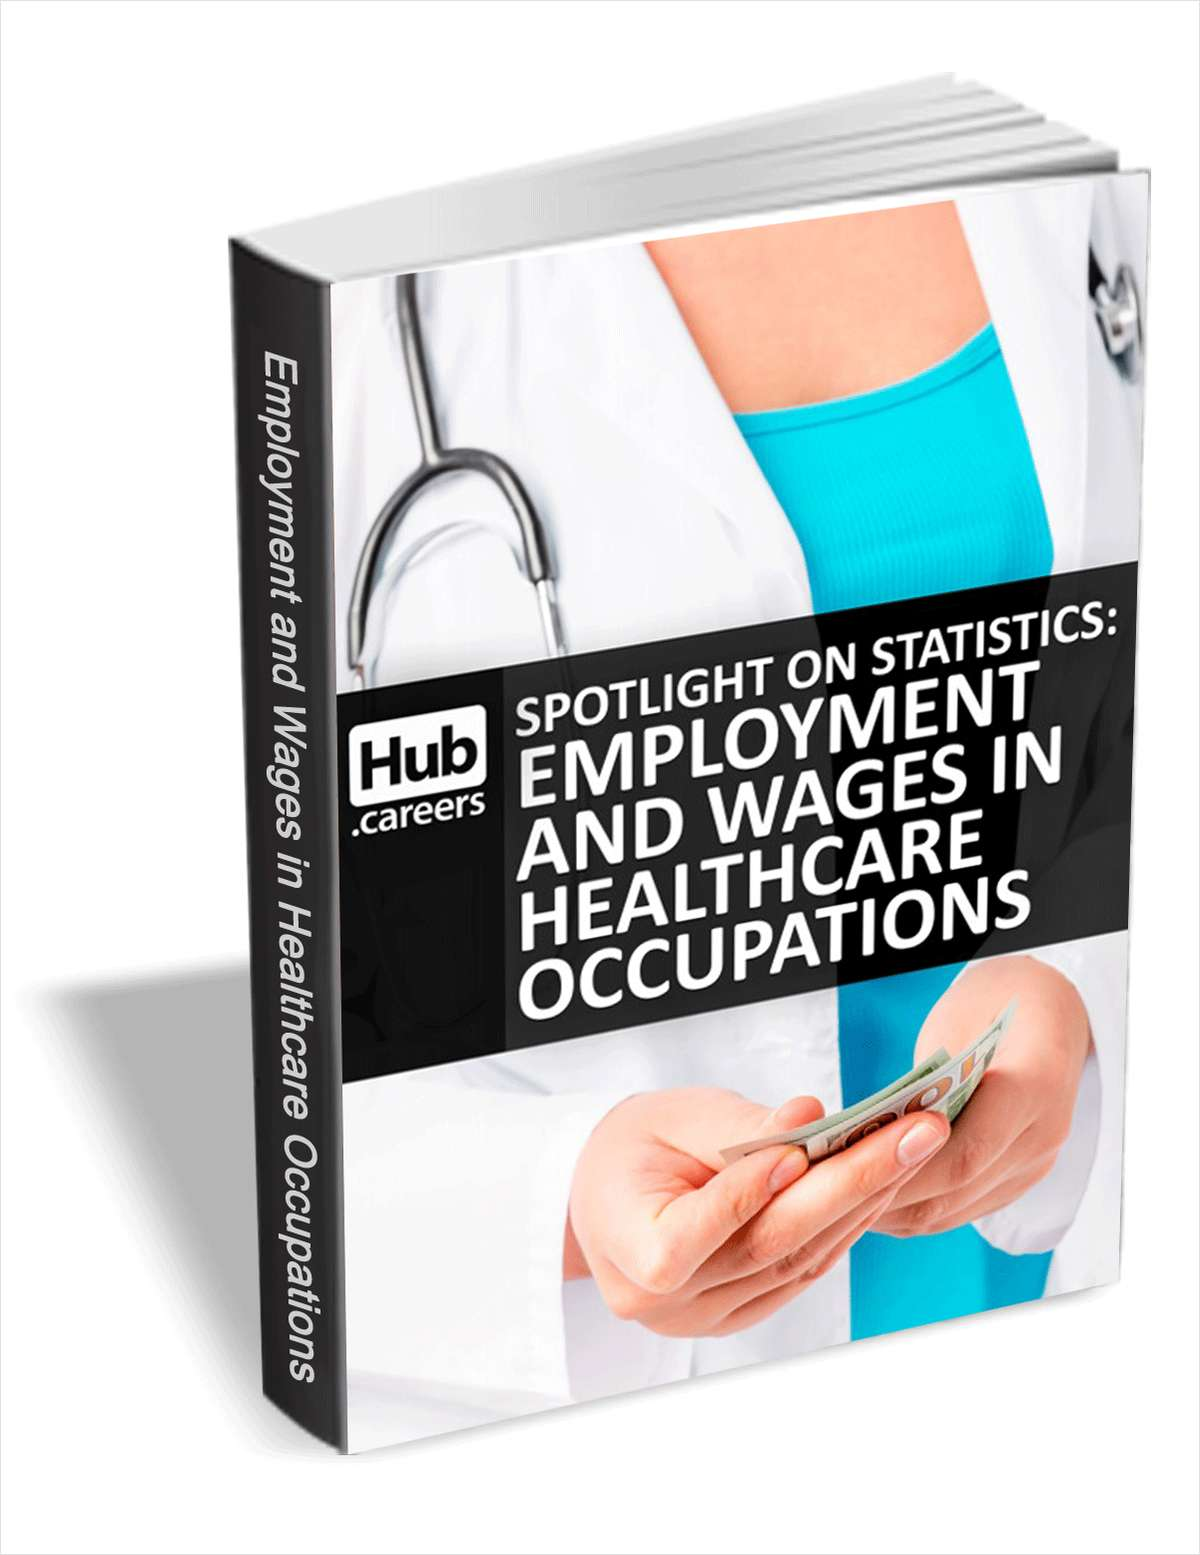 Employment And Wages In Healthcare Occupations